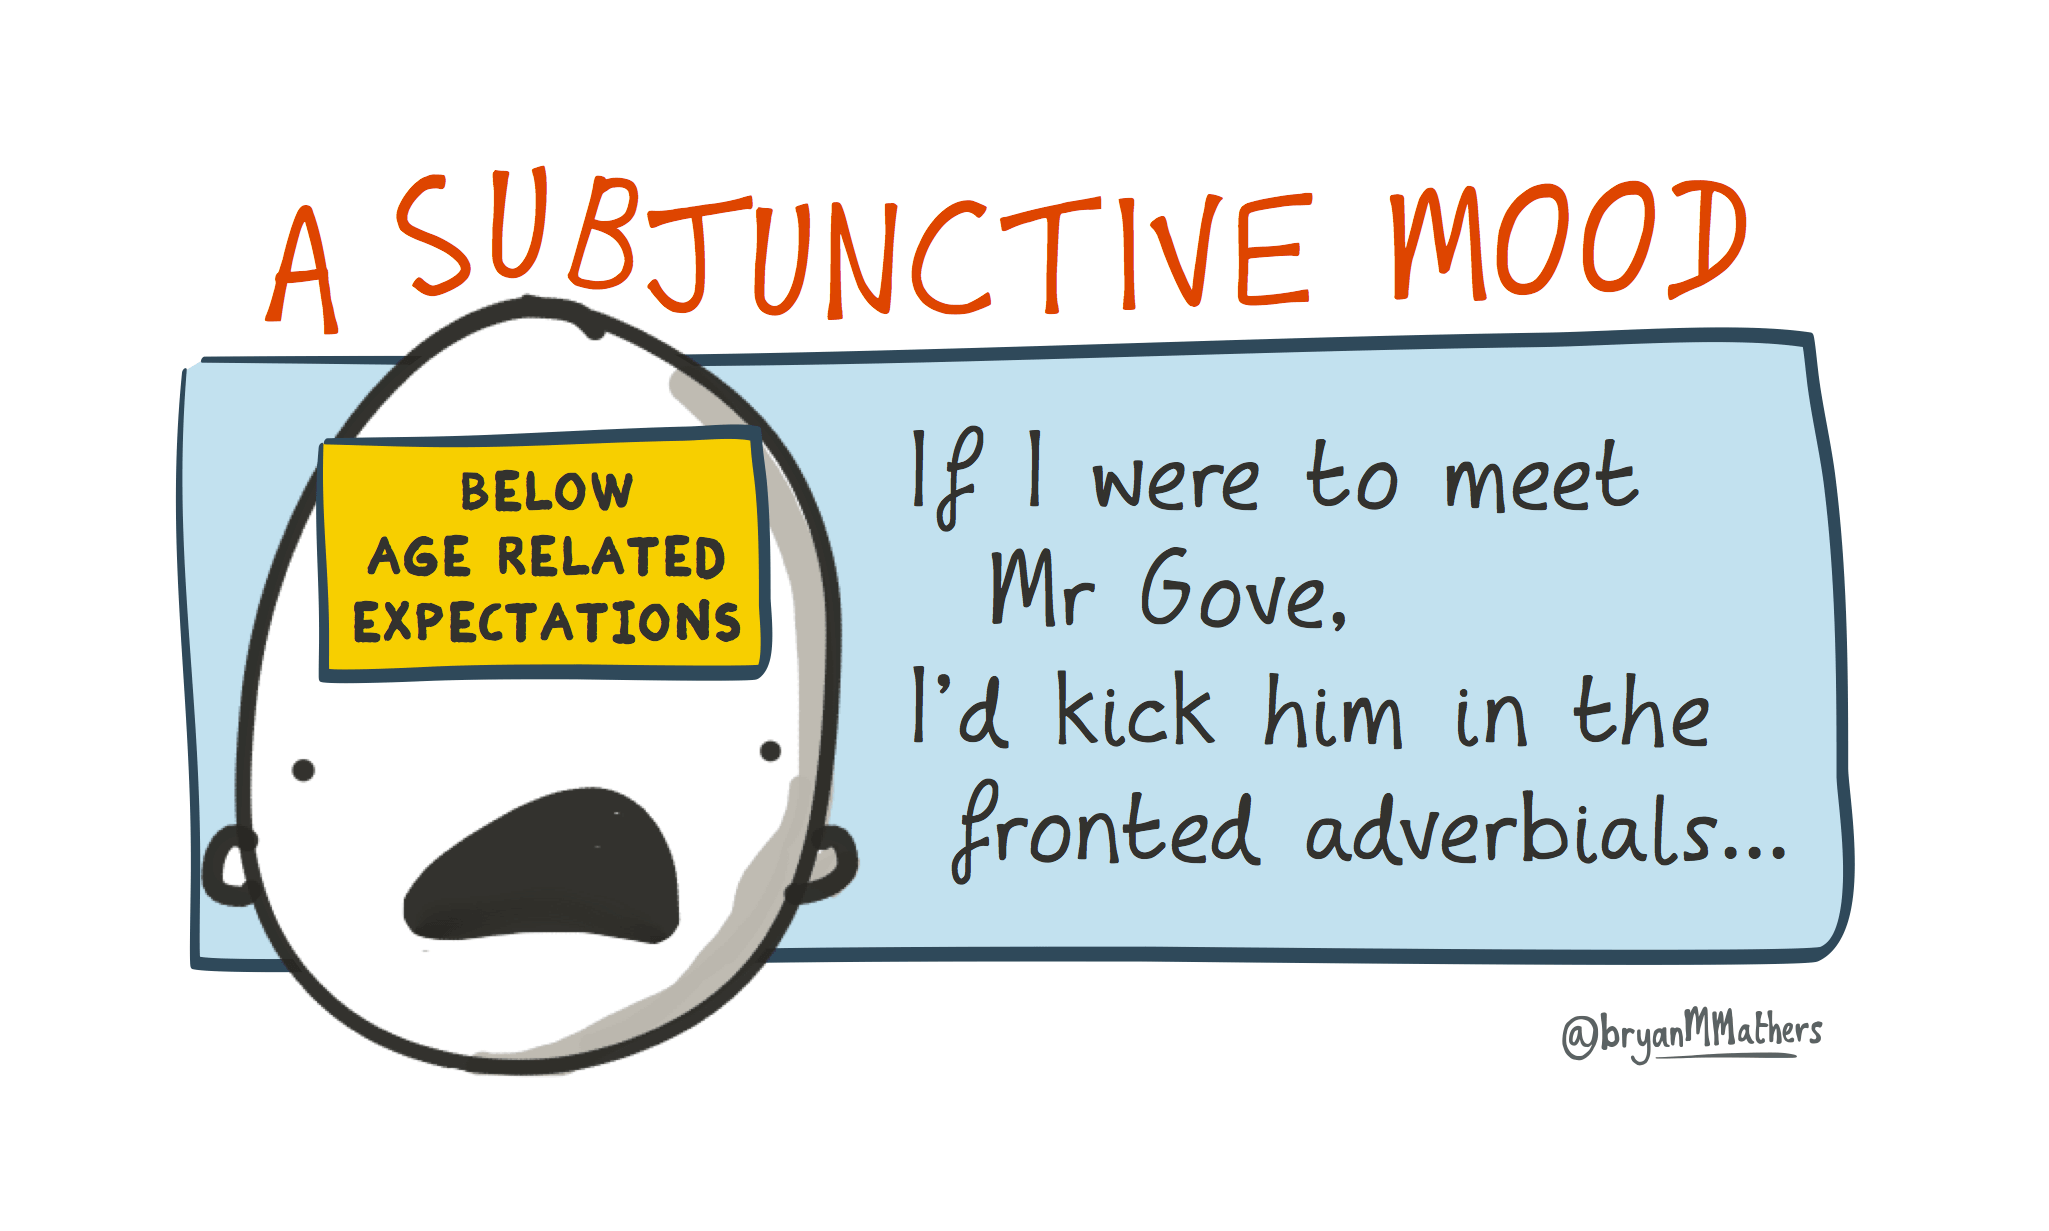 A subjunctive mood…